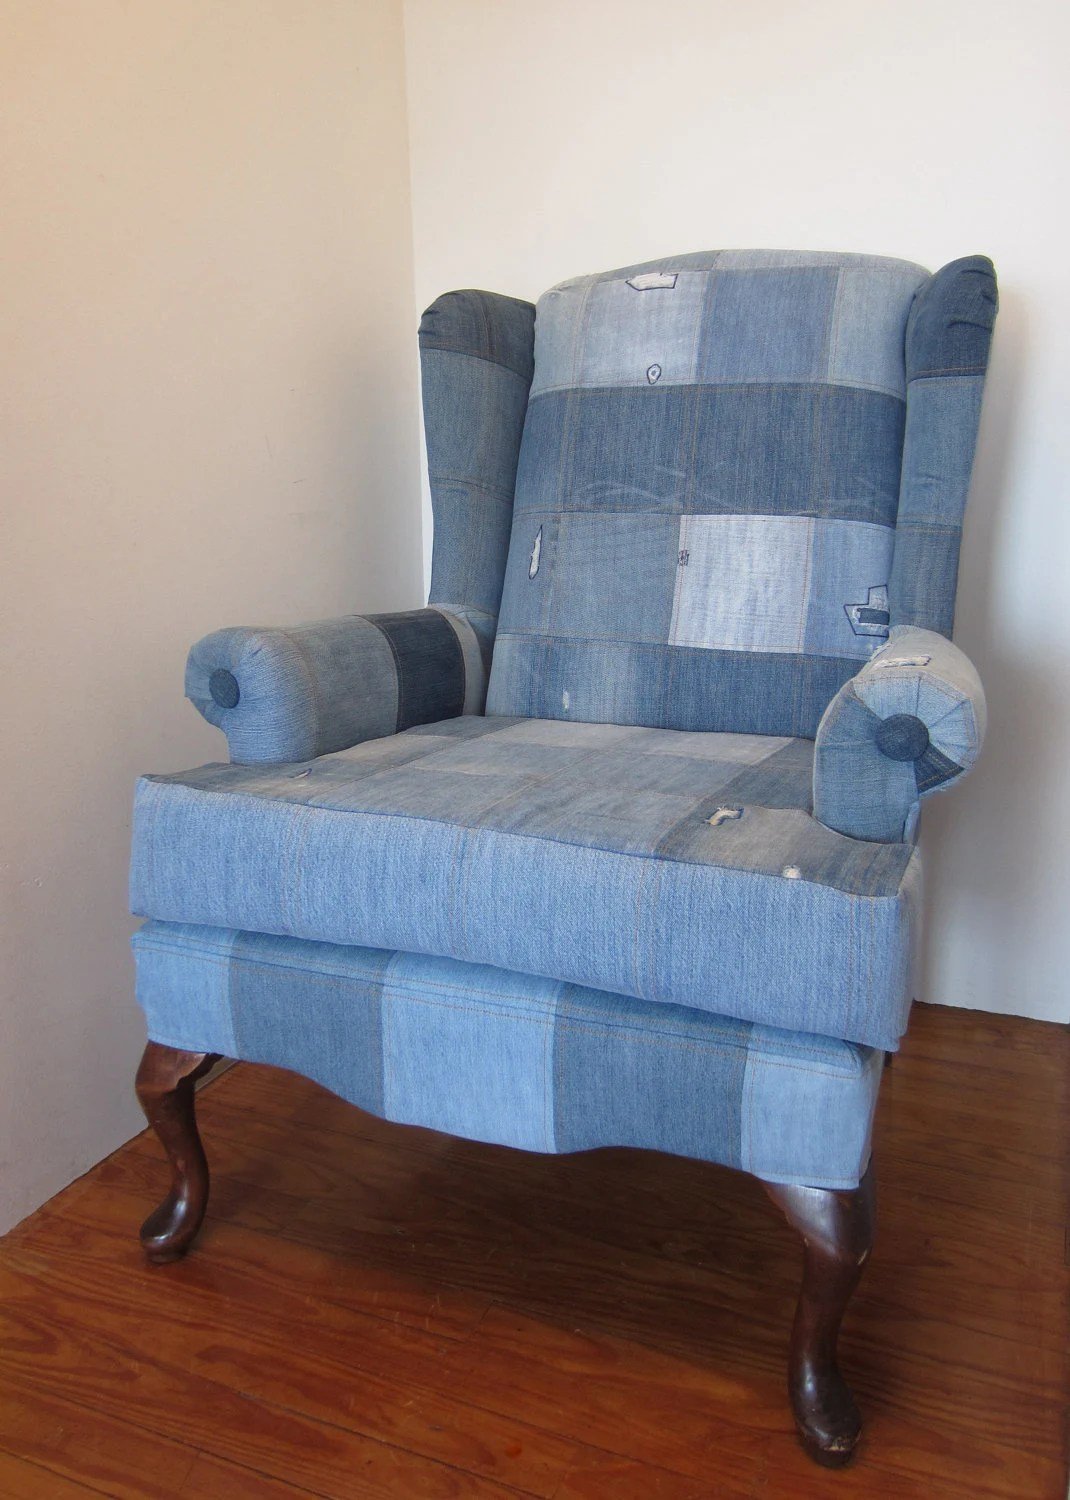 Denim Chairs Etsy Your Place To Buy And Sell All Things Handmade